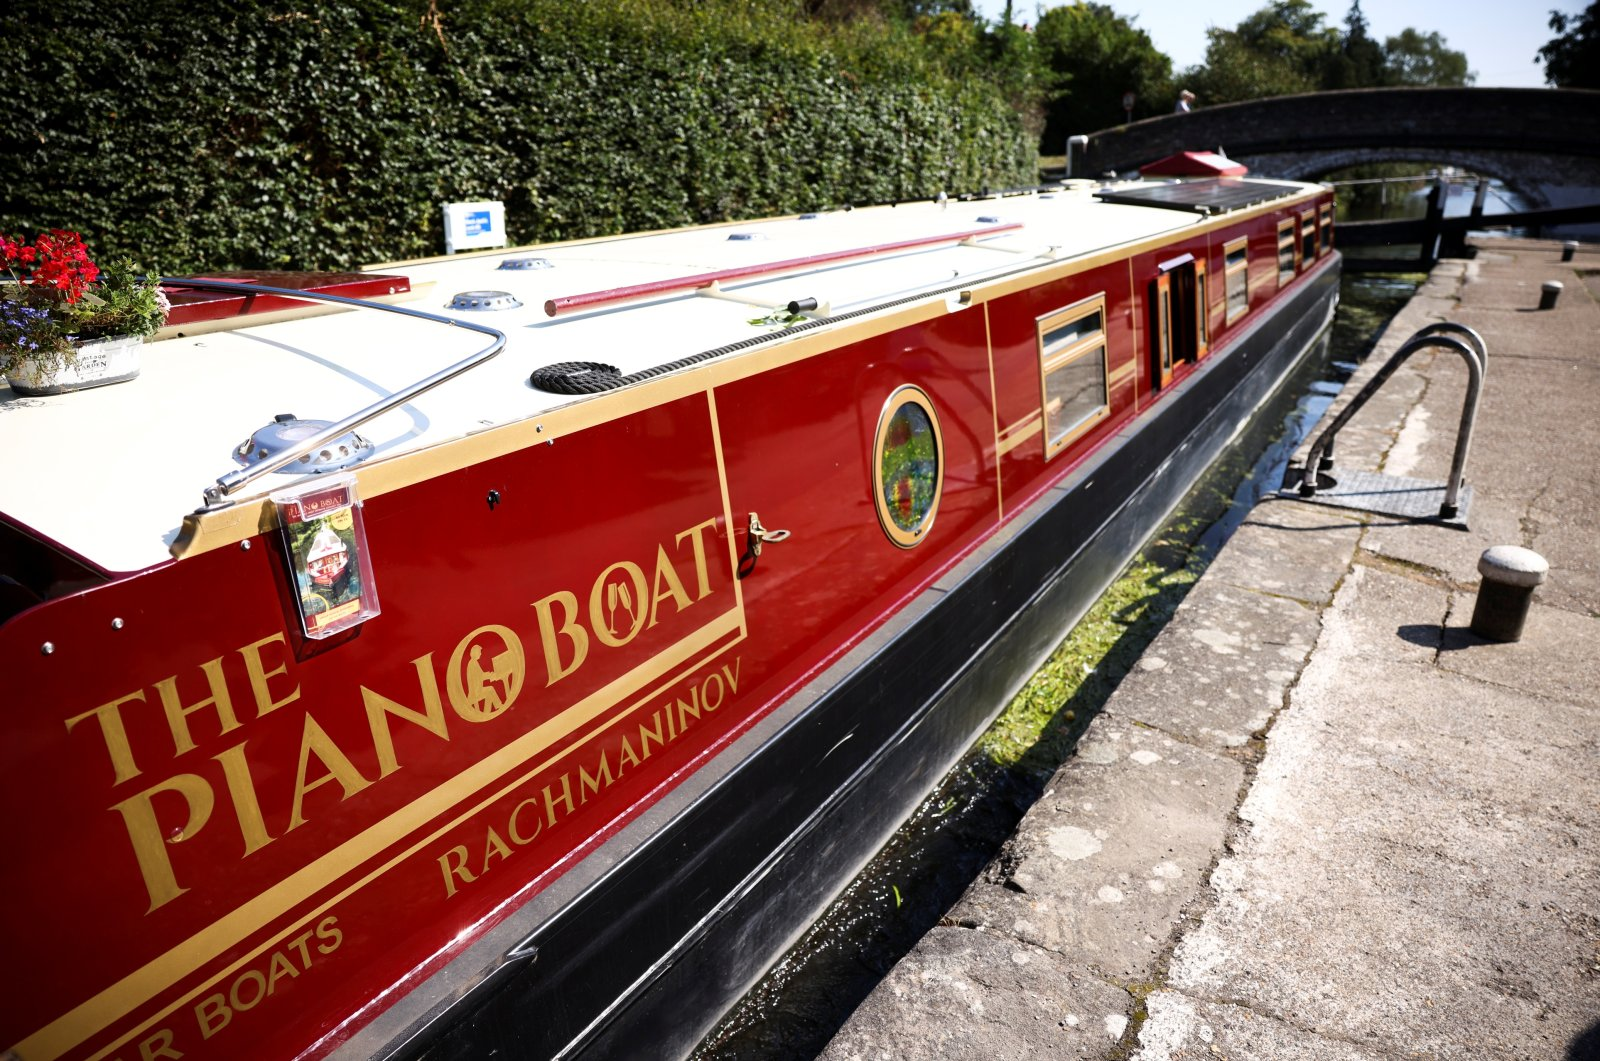 The canal boat concert hall, named The Piano Boat, owned by pianists Masayuki Tayama and Rhiana Henderson is seen in Harefield, Britain, Sept. 8, 2021. (Reuters Photo)